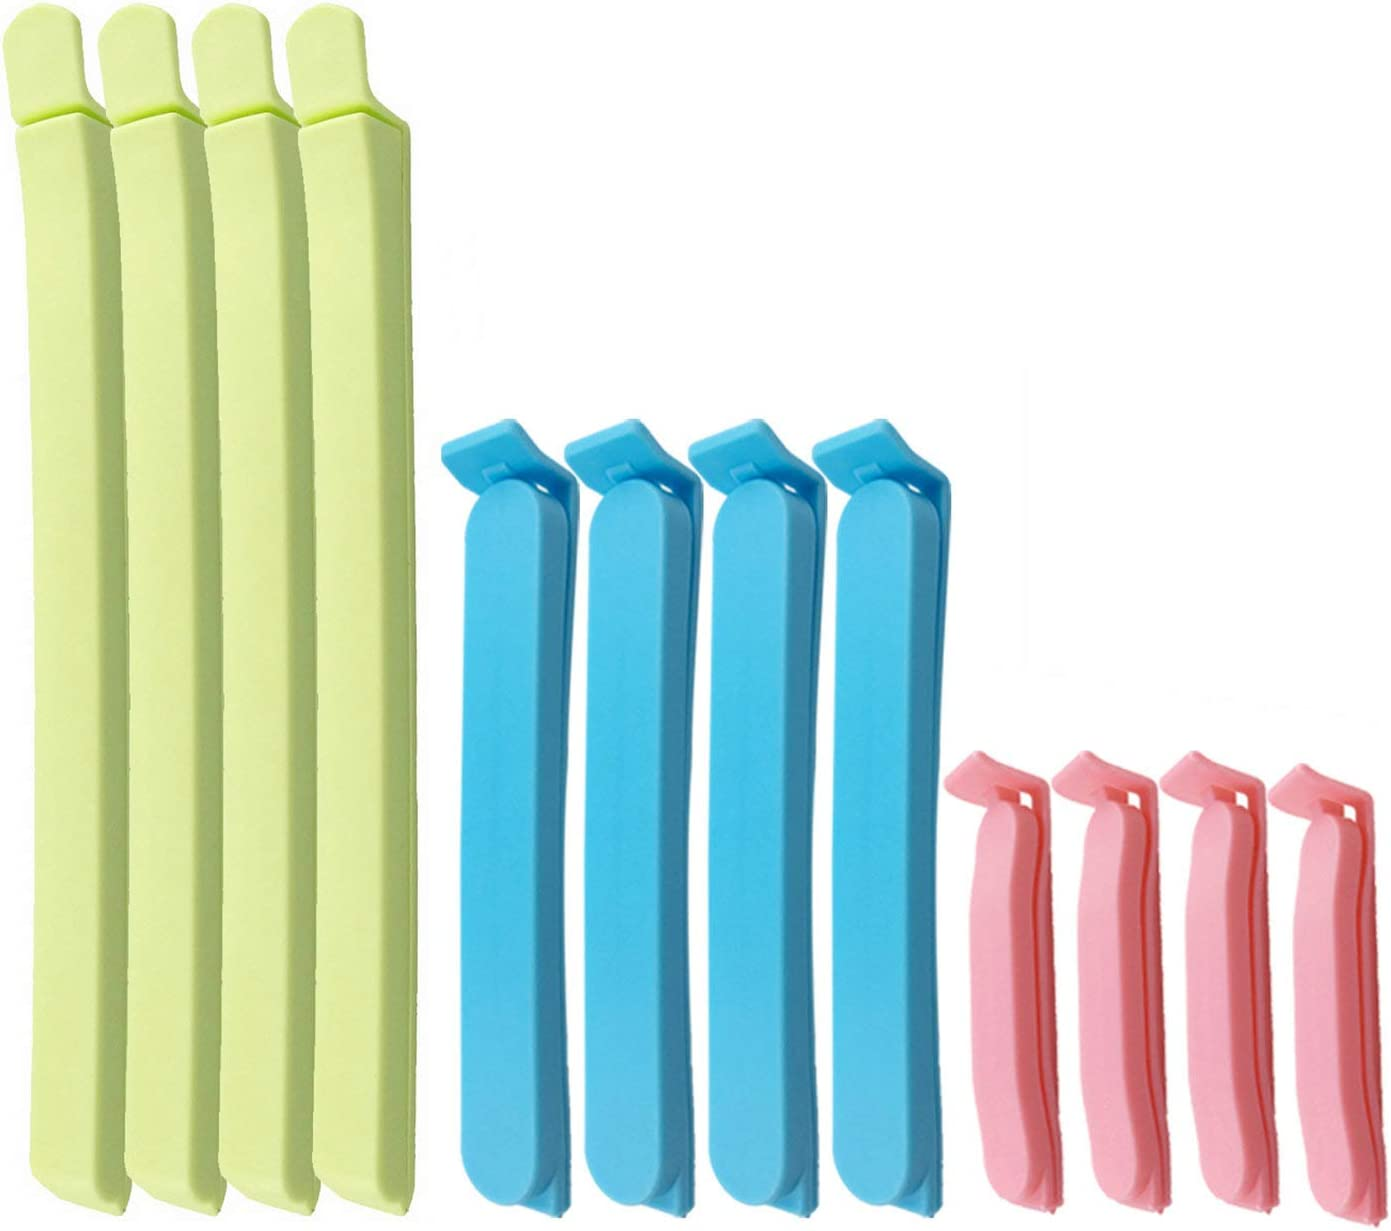 26Pcs Plastic Sealing Clips for Food and Snack Bags by YINGFENG, 3 - 4.5 -7.8inch, Fresh-Keeping Clamp Sealer, Assorted Sizes and Colors